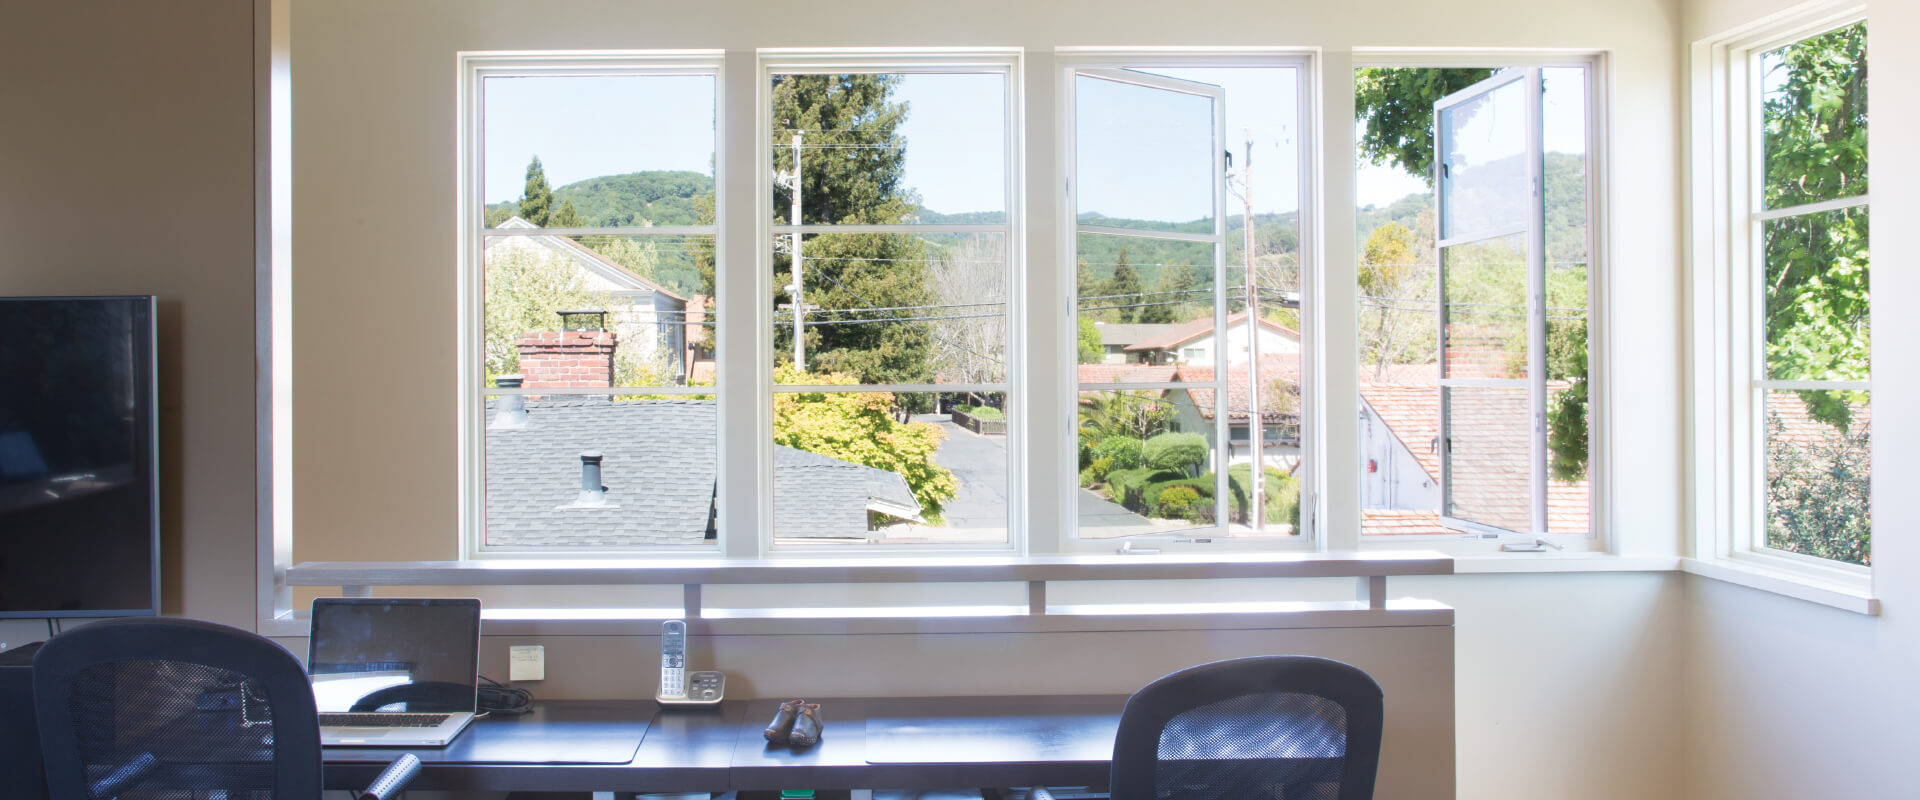 Interior home office photo of VistaLuxe four-wide Crank-Out Casement window with PDL, spread mull and white hardware.